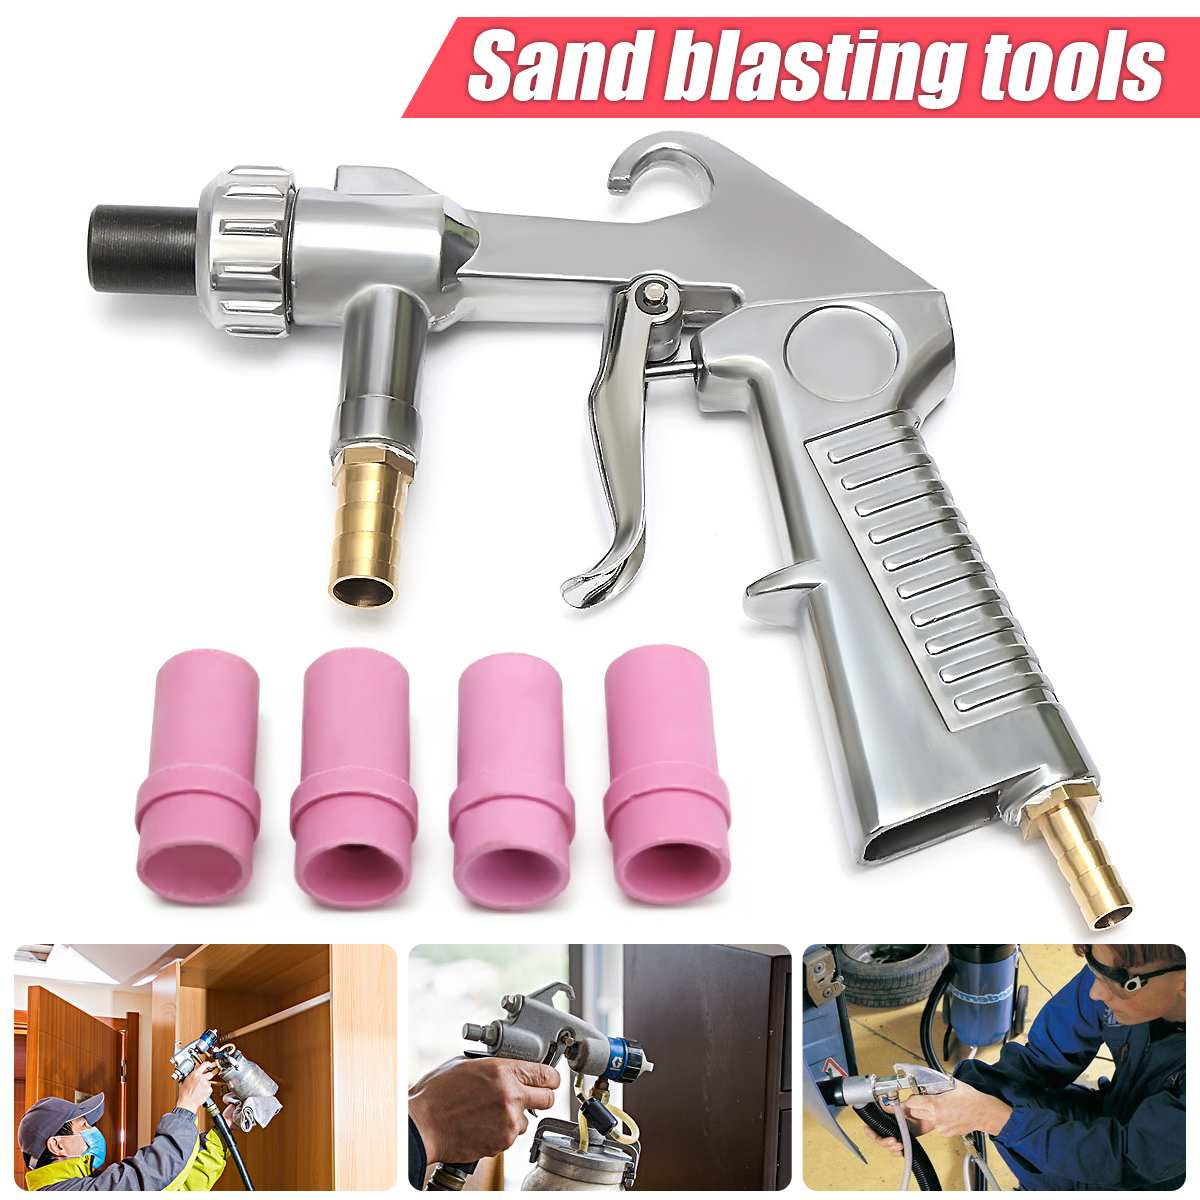 Sandblaster Air Siphon Feed Blast Nozzle Ceramic Tips Abrasive Sand Blasting With 4pcs Ceramic Nozzles Abrasive